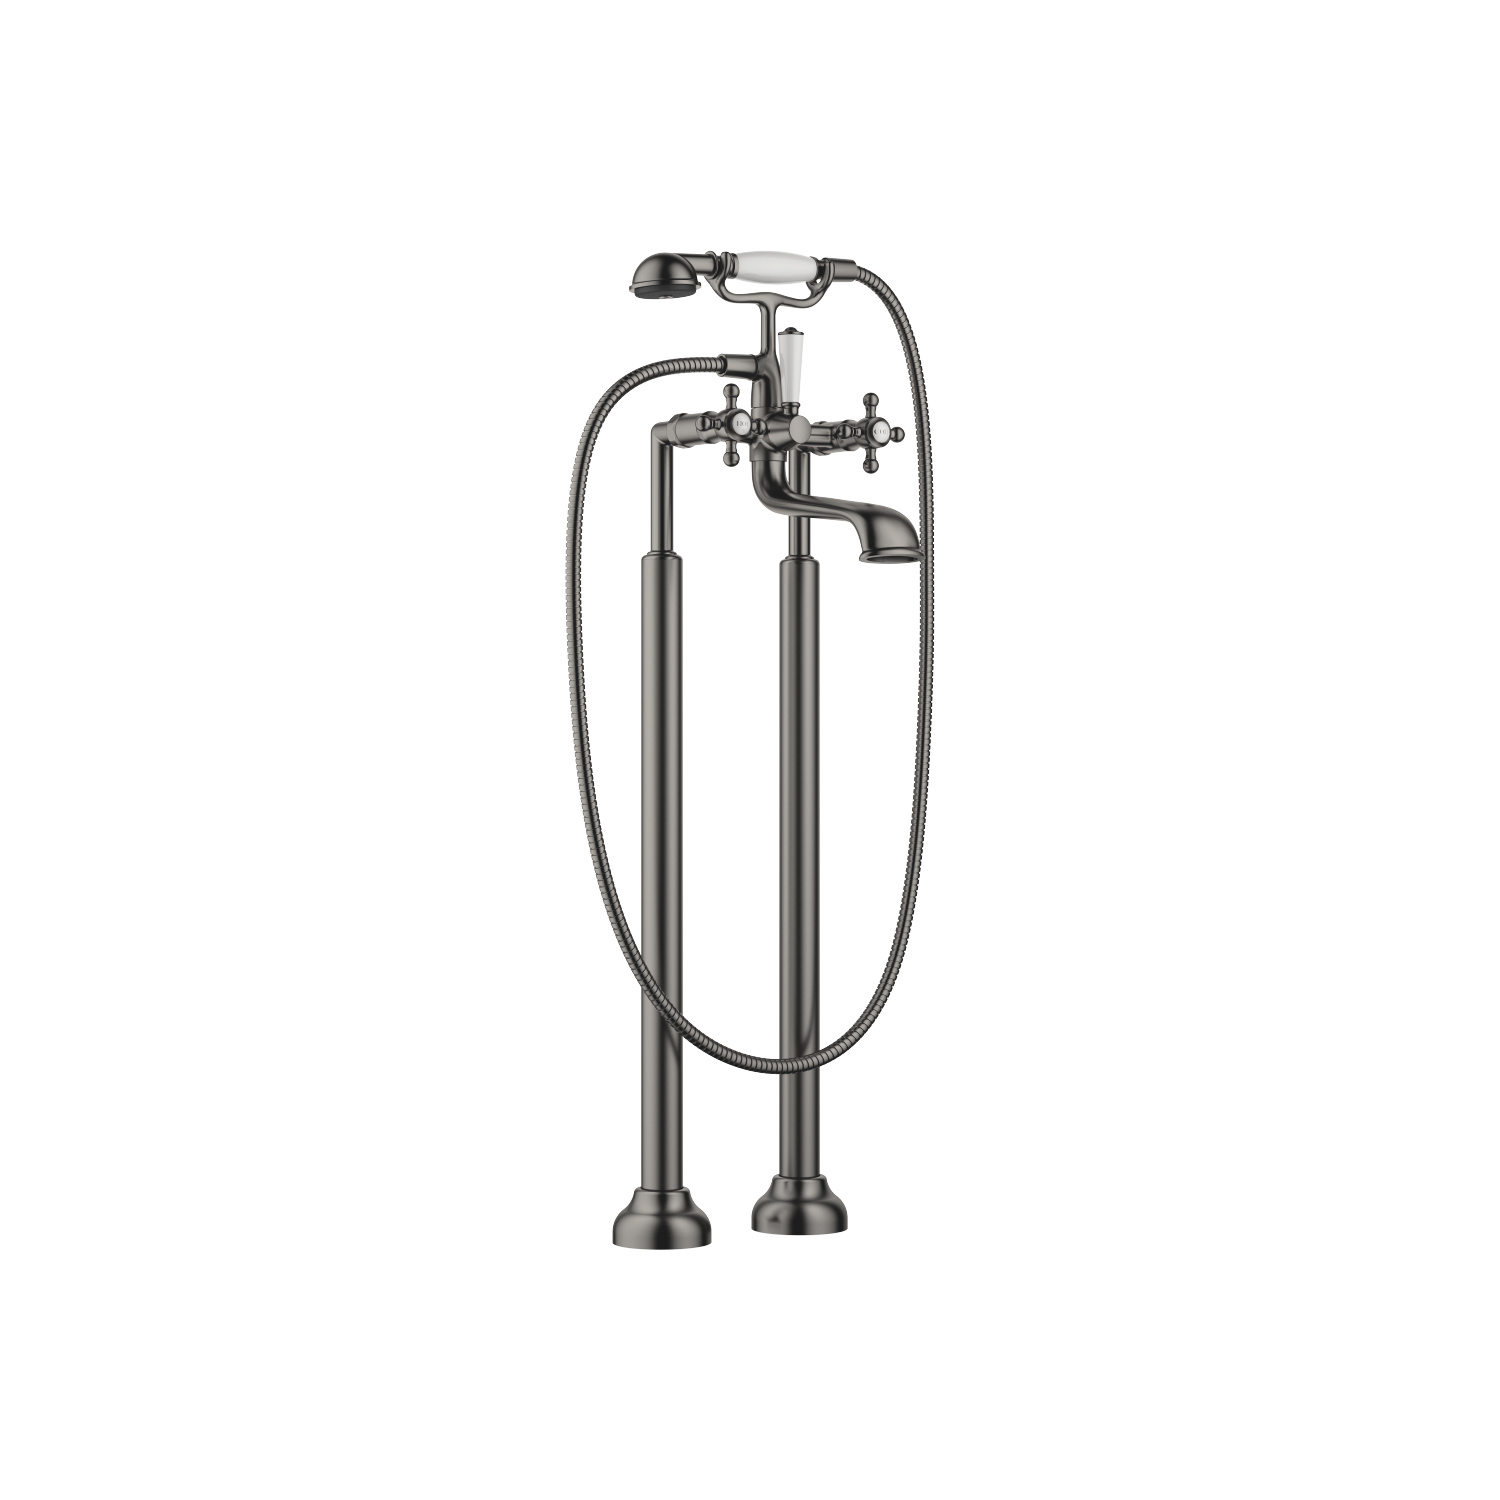 Two-hole bath mixer for free-standing assembly with hand shower set - Dark Platinum matt